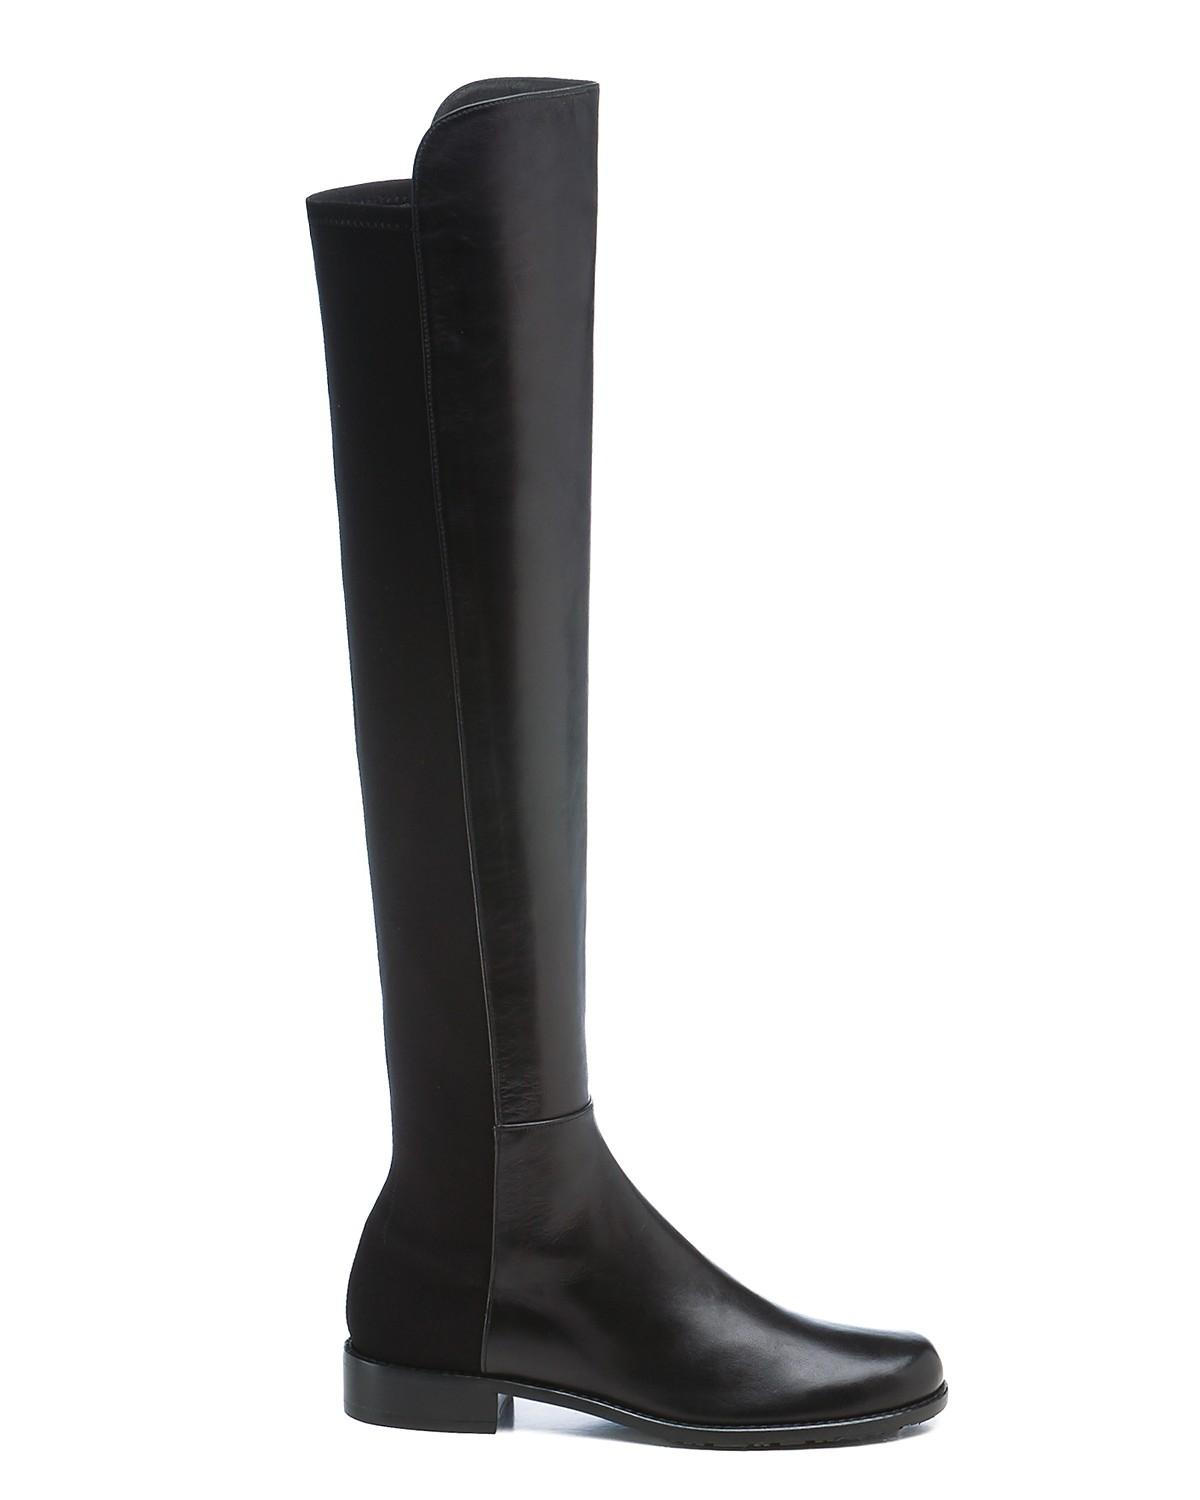 Stuart Weitzman Black New 5050 Otk Classic Leather Boots/Booties Size US 6.5 Regular (M, B)